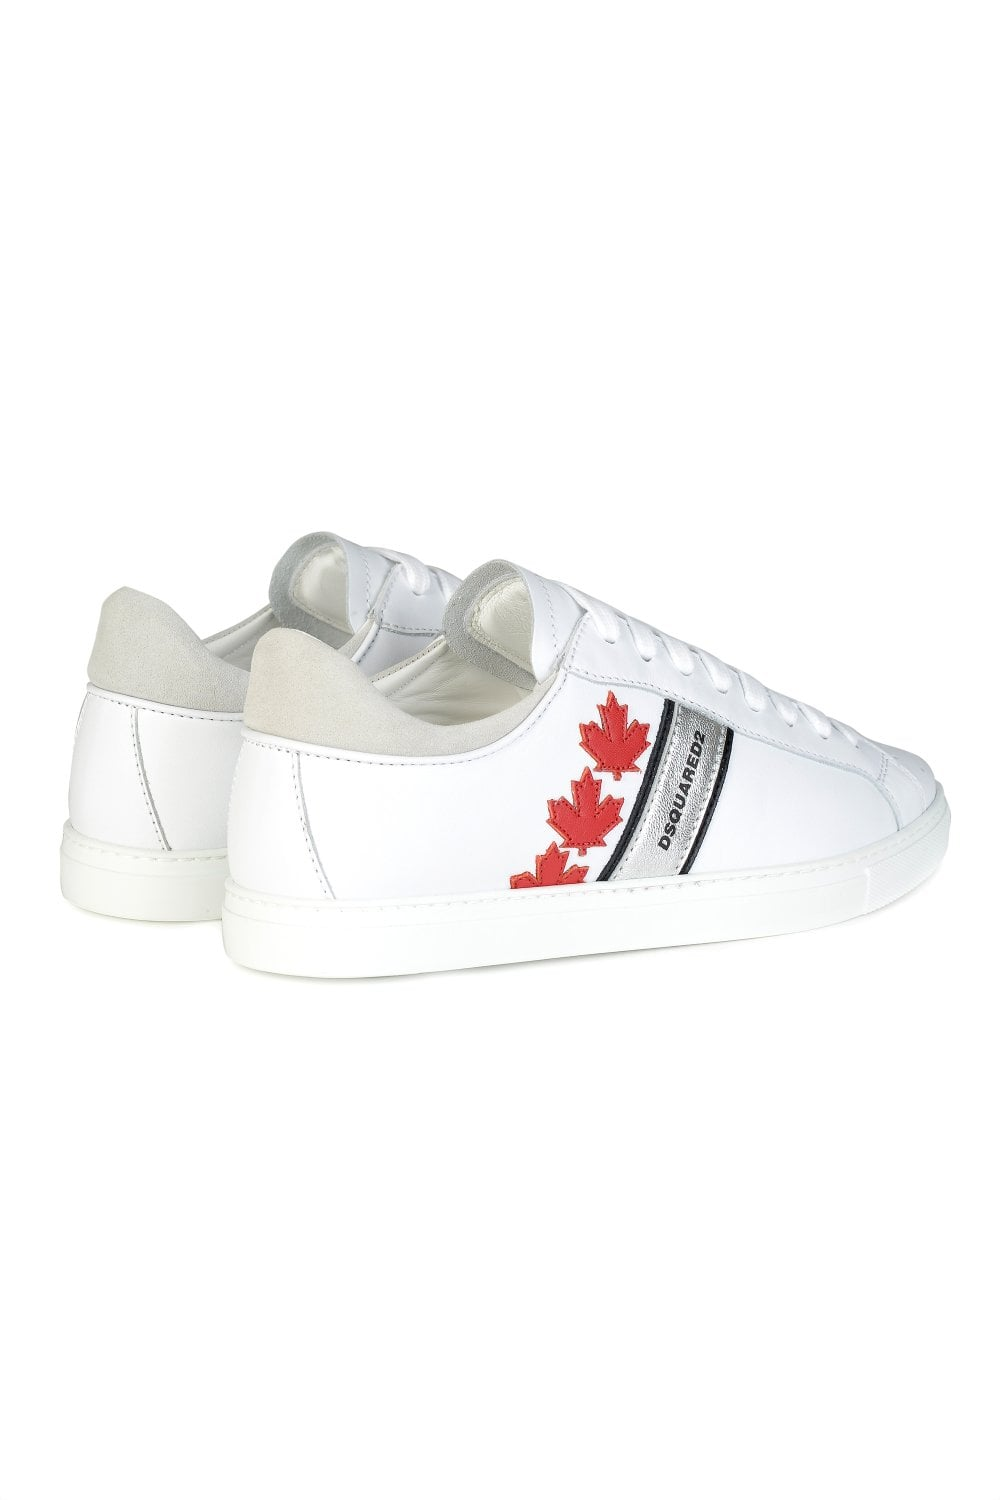 DSQUARED2 Dsquared2 Maple Leaf Low Rise